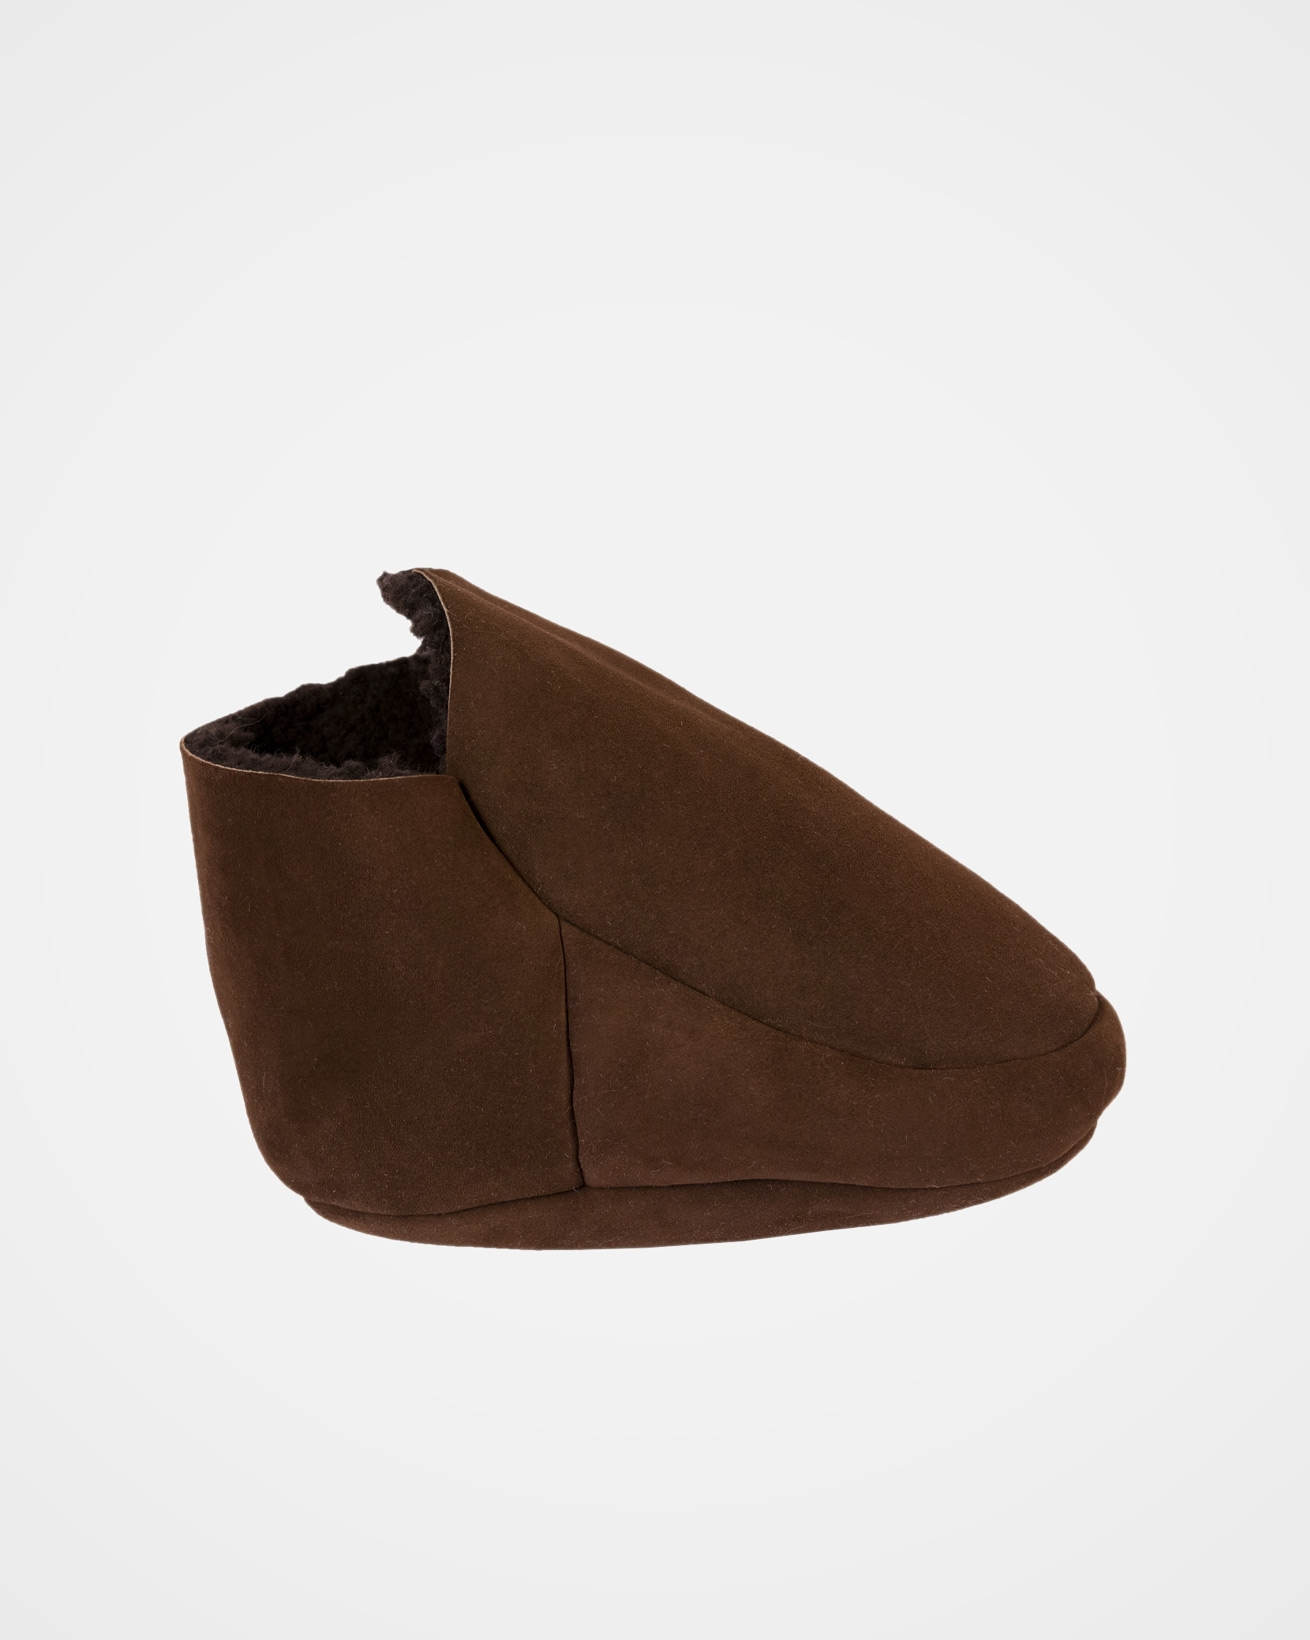 2140_sheepskin-footmuff_mocca_side.jpg